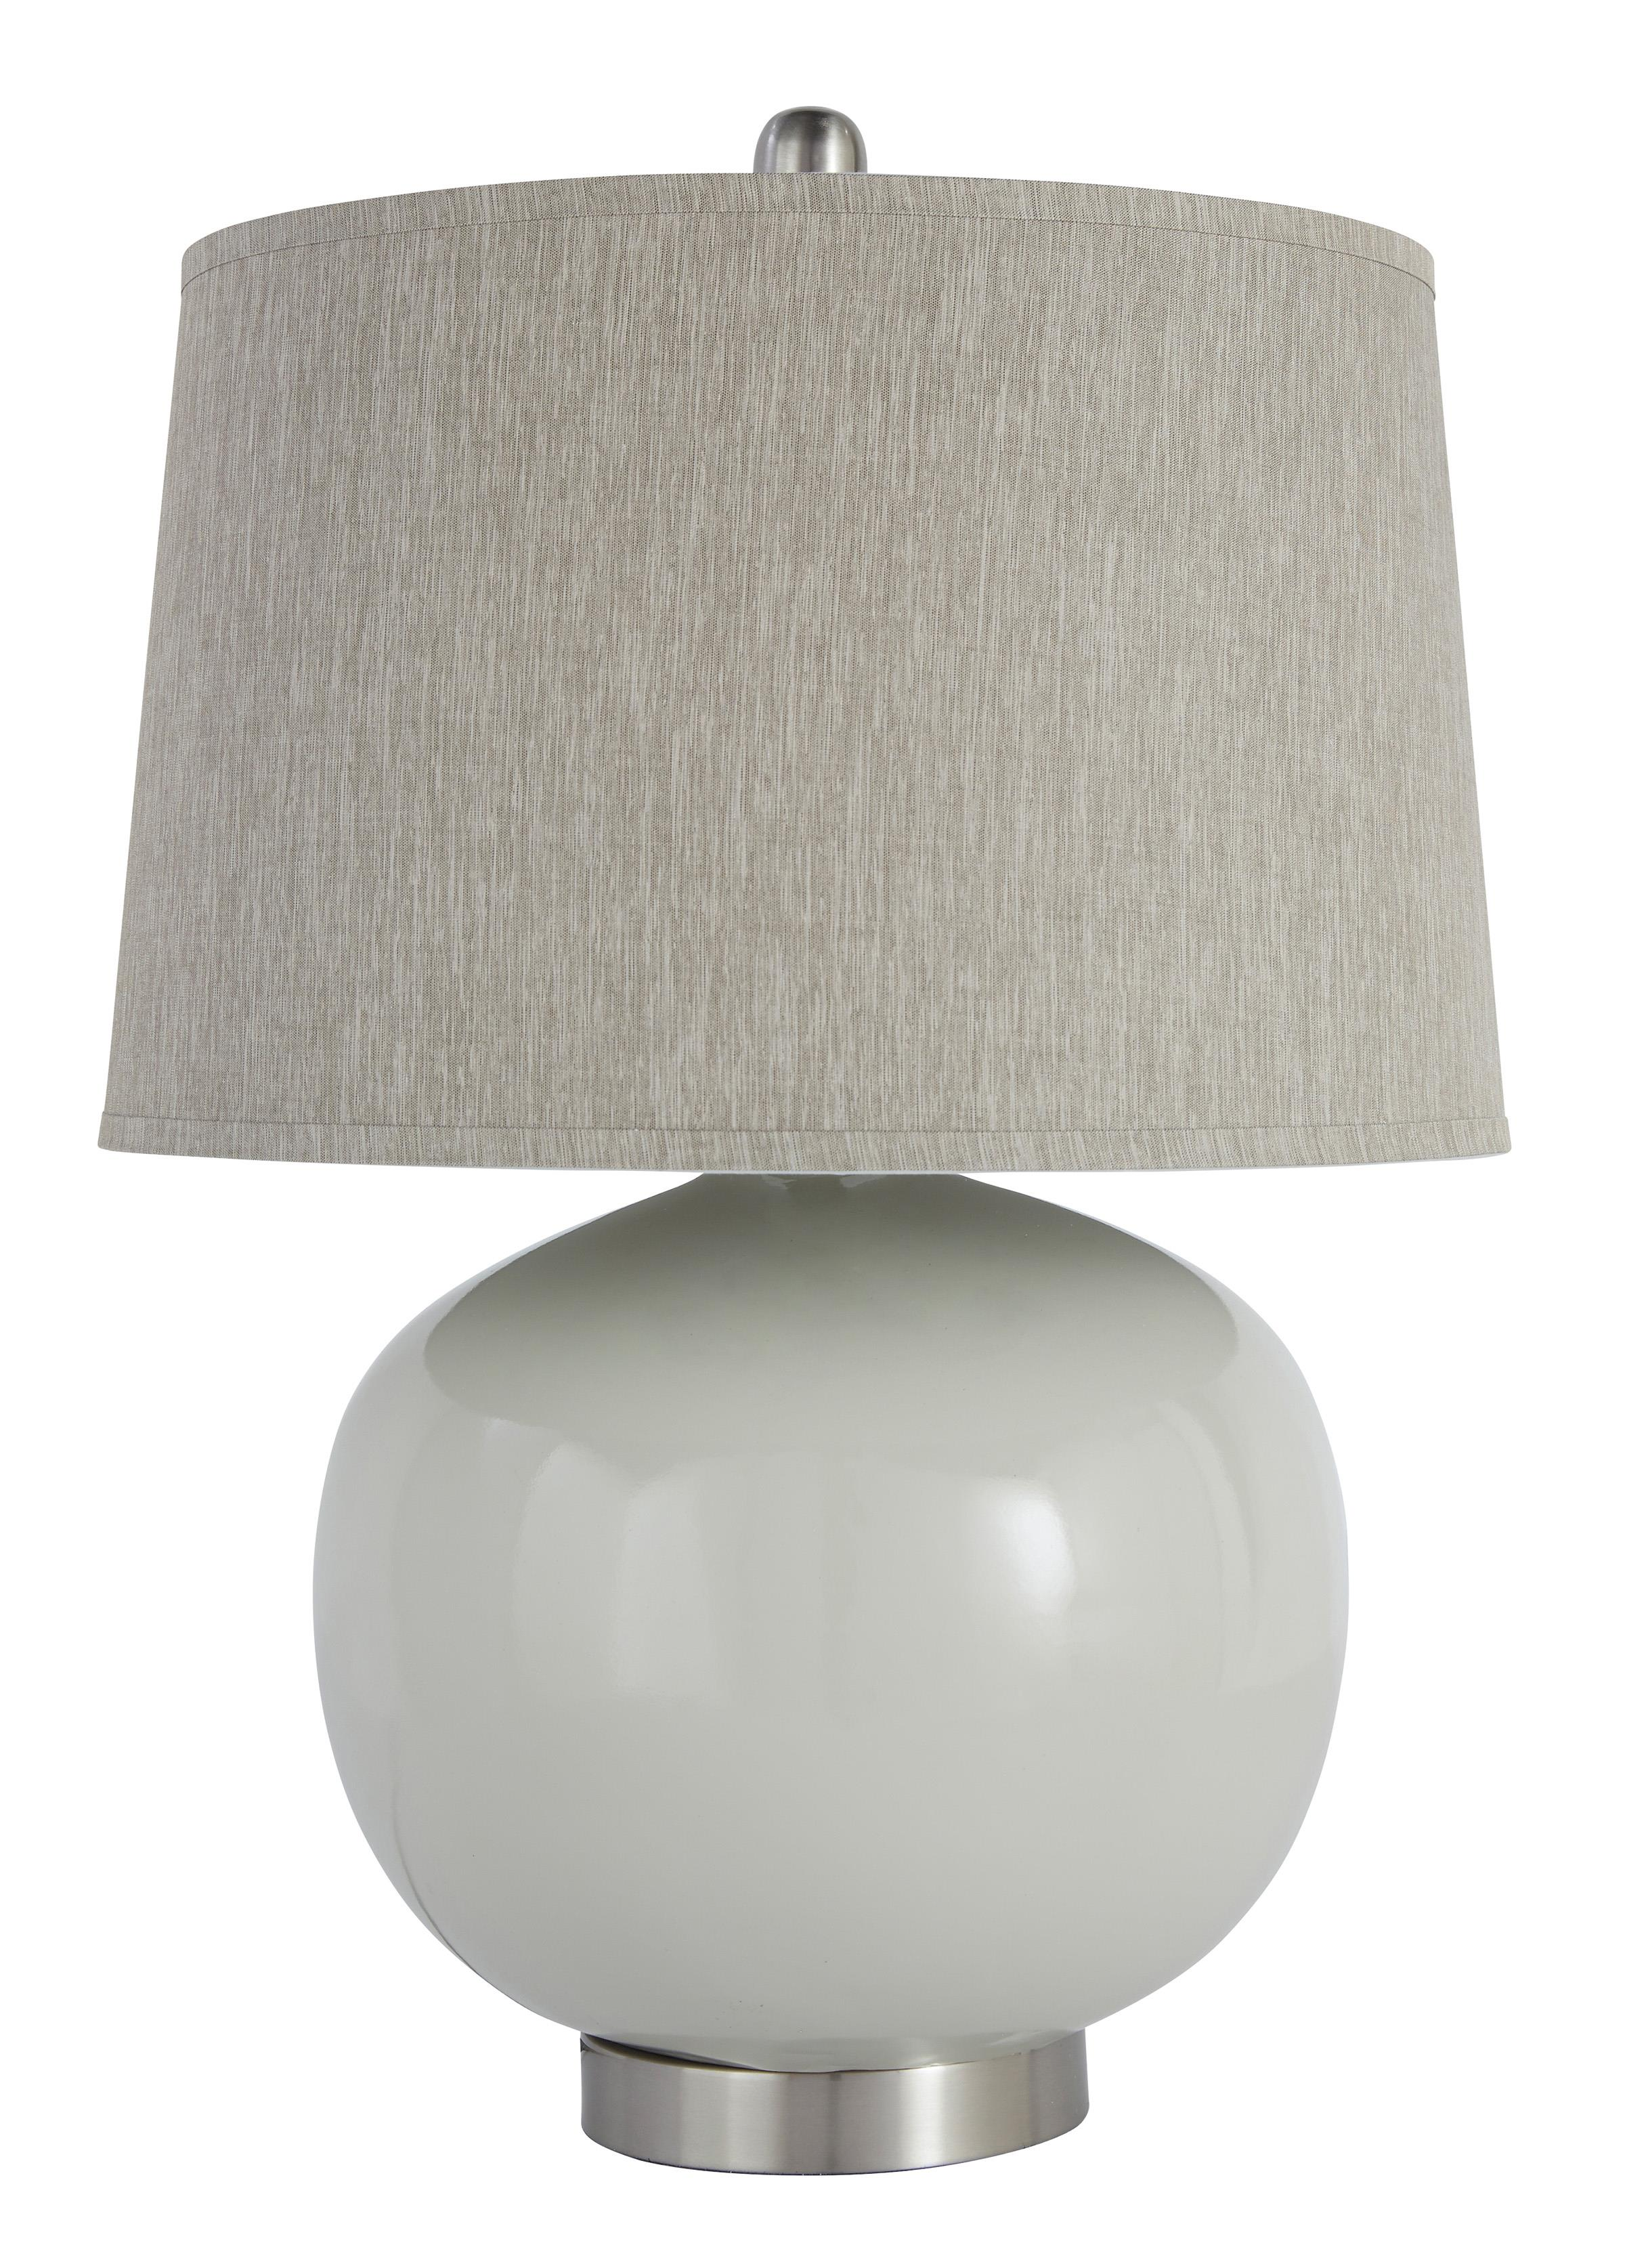 Signature Design by Ashley Lamps - Contemporary Poly Table Lamp  - Item Number: L235404